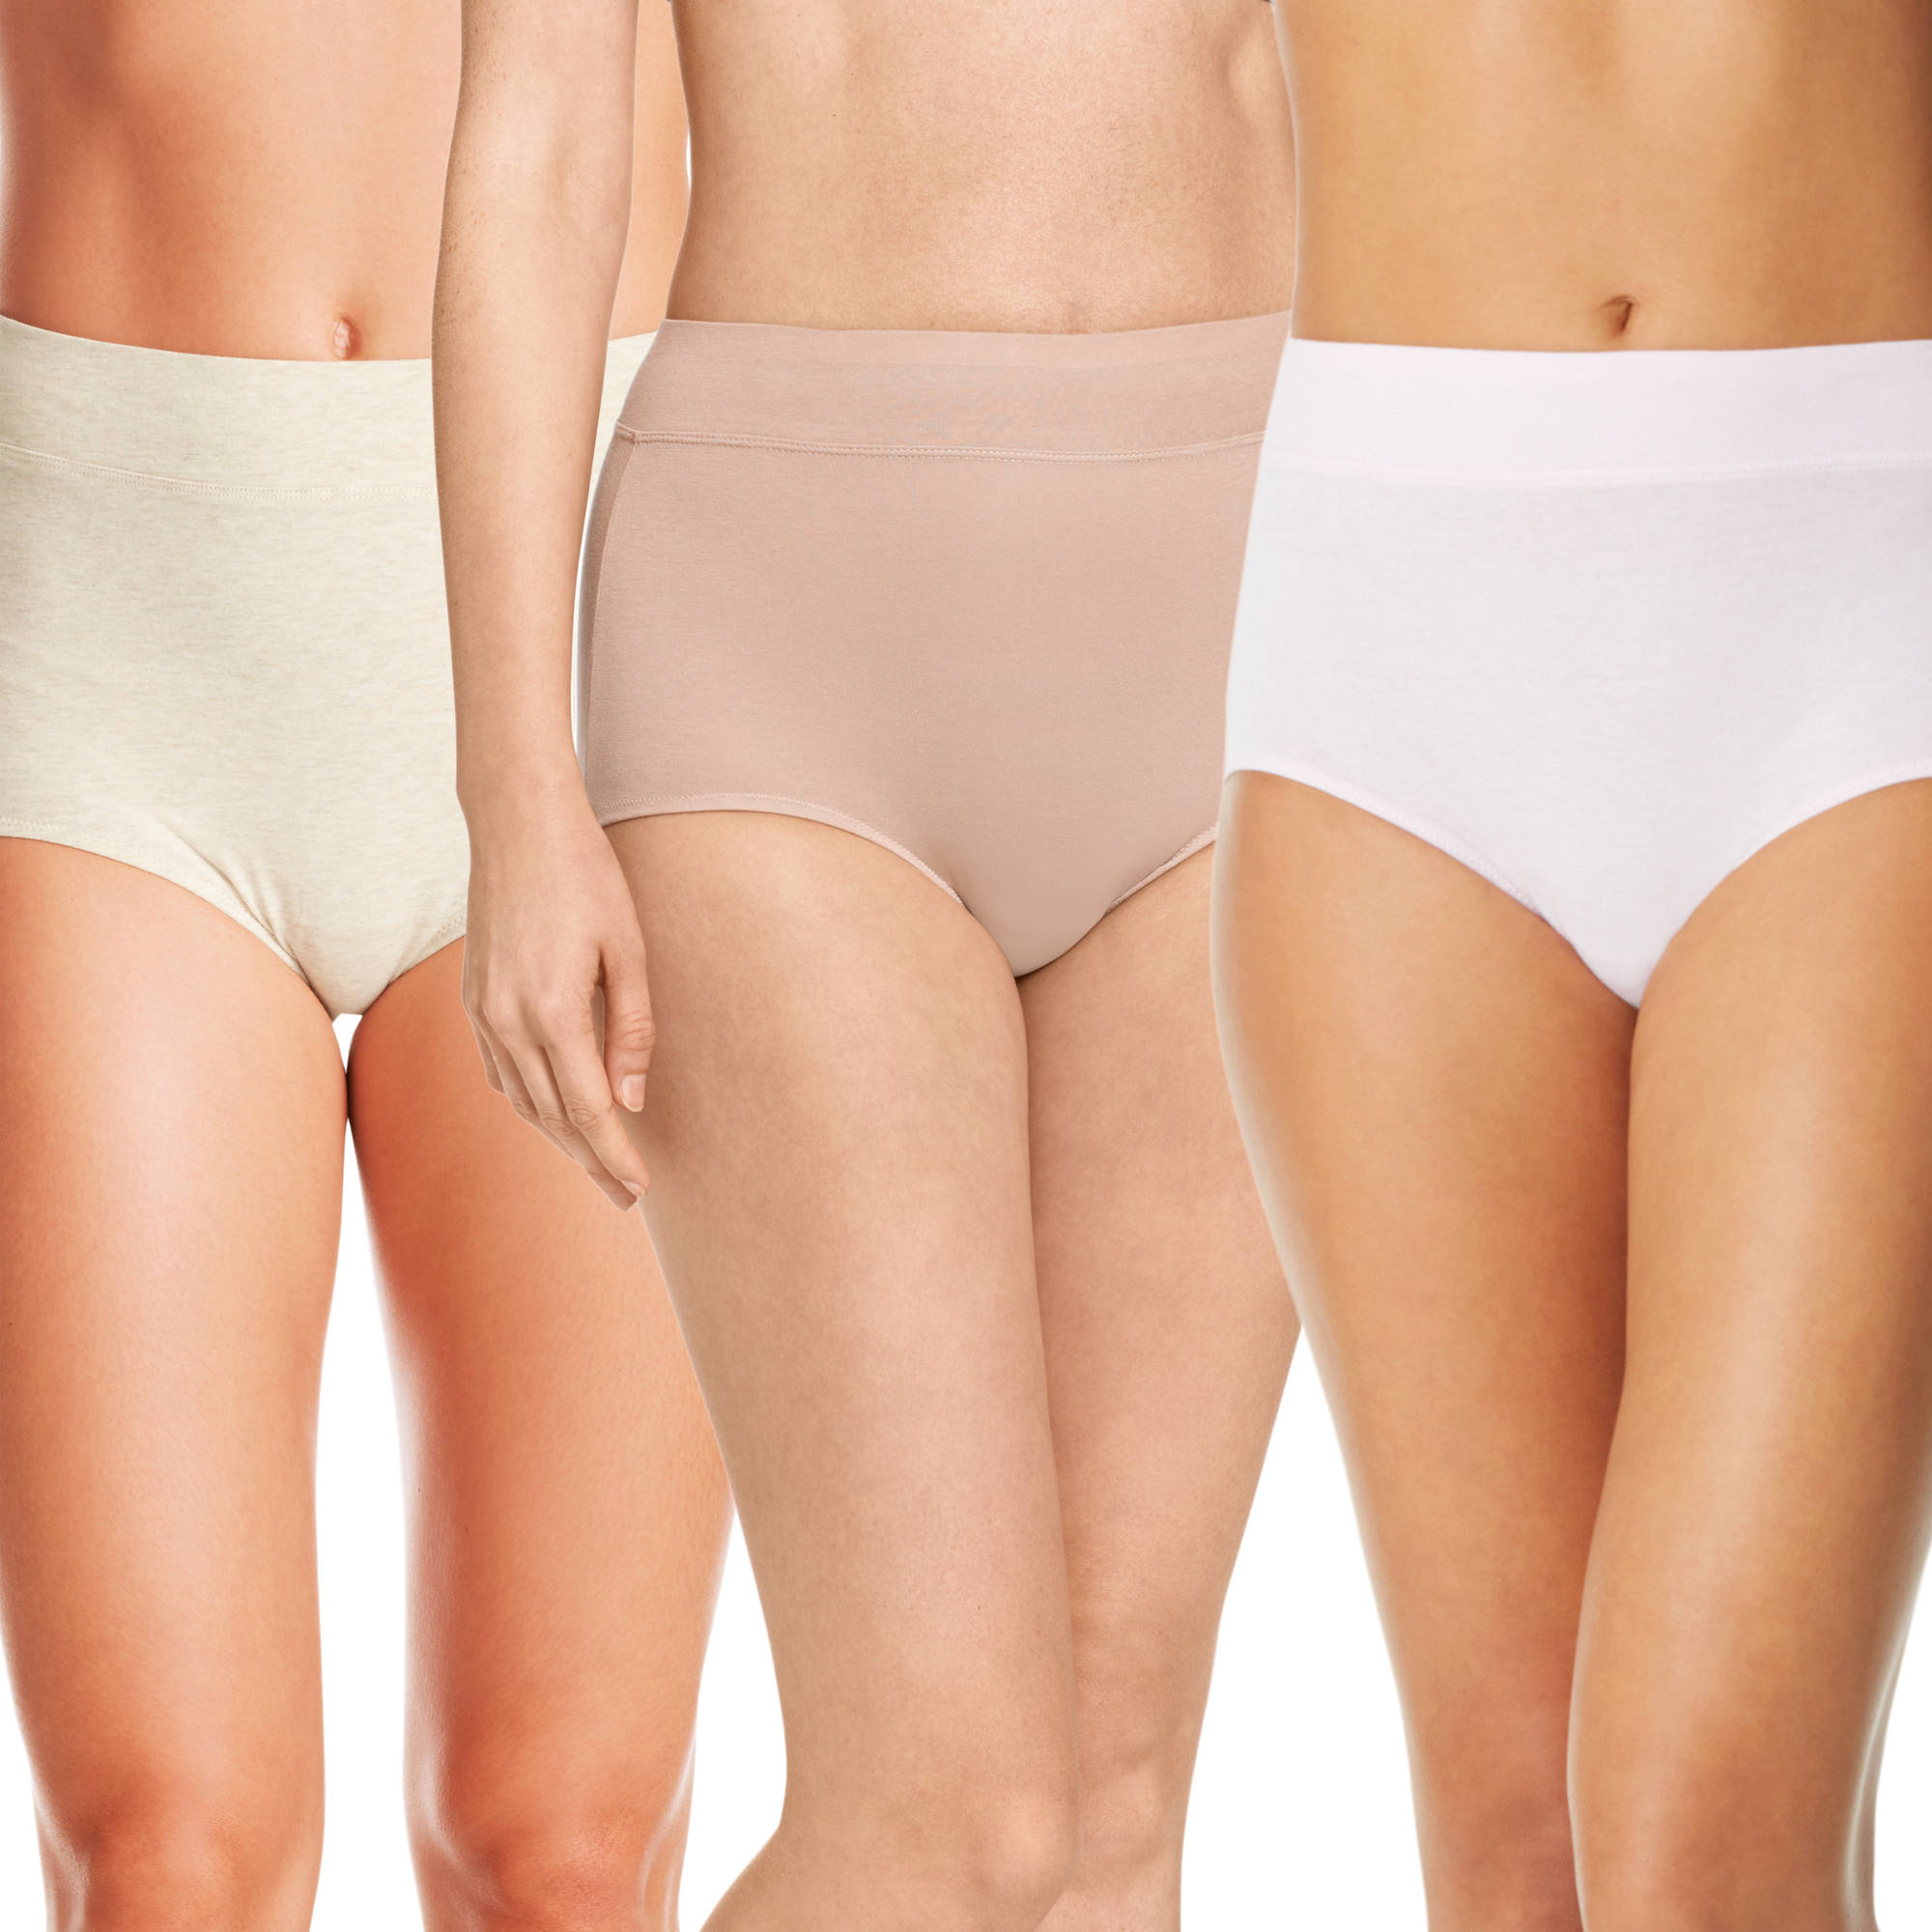 Blissful Benefits by Warner's No Muffin Top Cotton Brief Panties 3PK